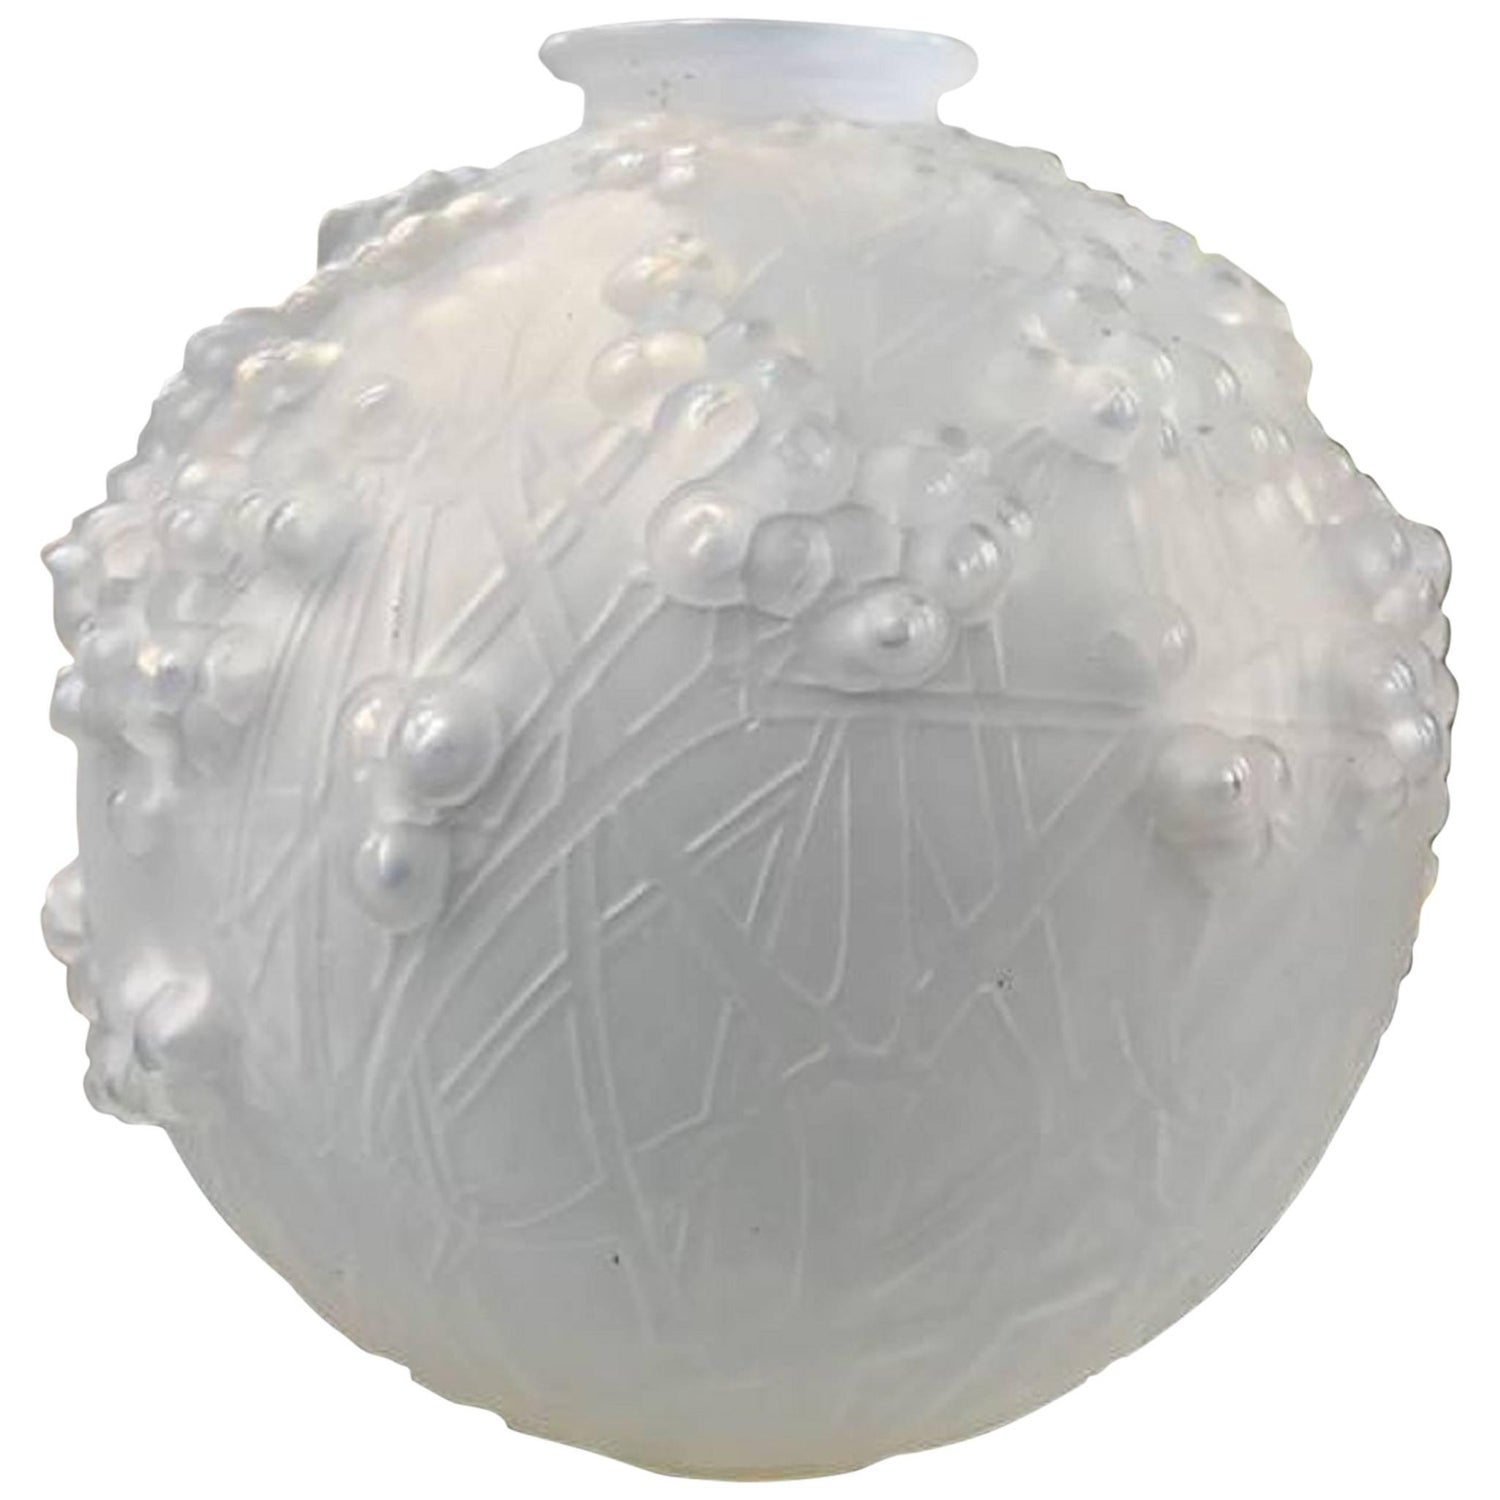 Lalique glass vase druides circa 1920 for sale at 1stdibs reviewsmspy